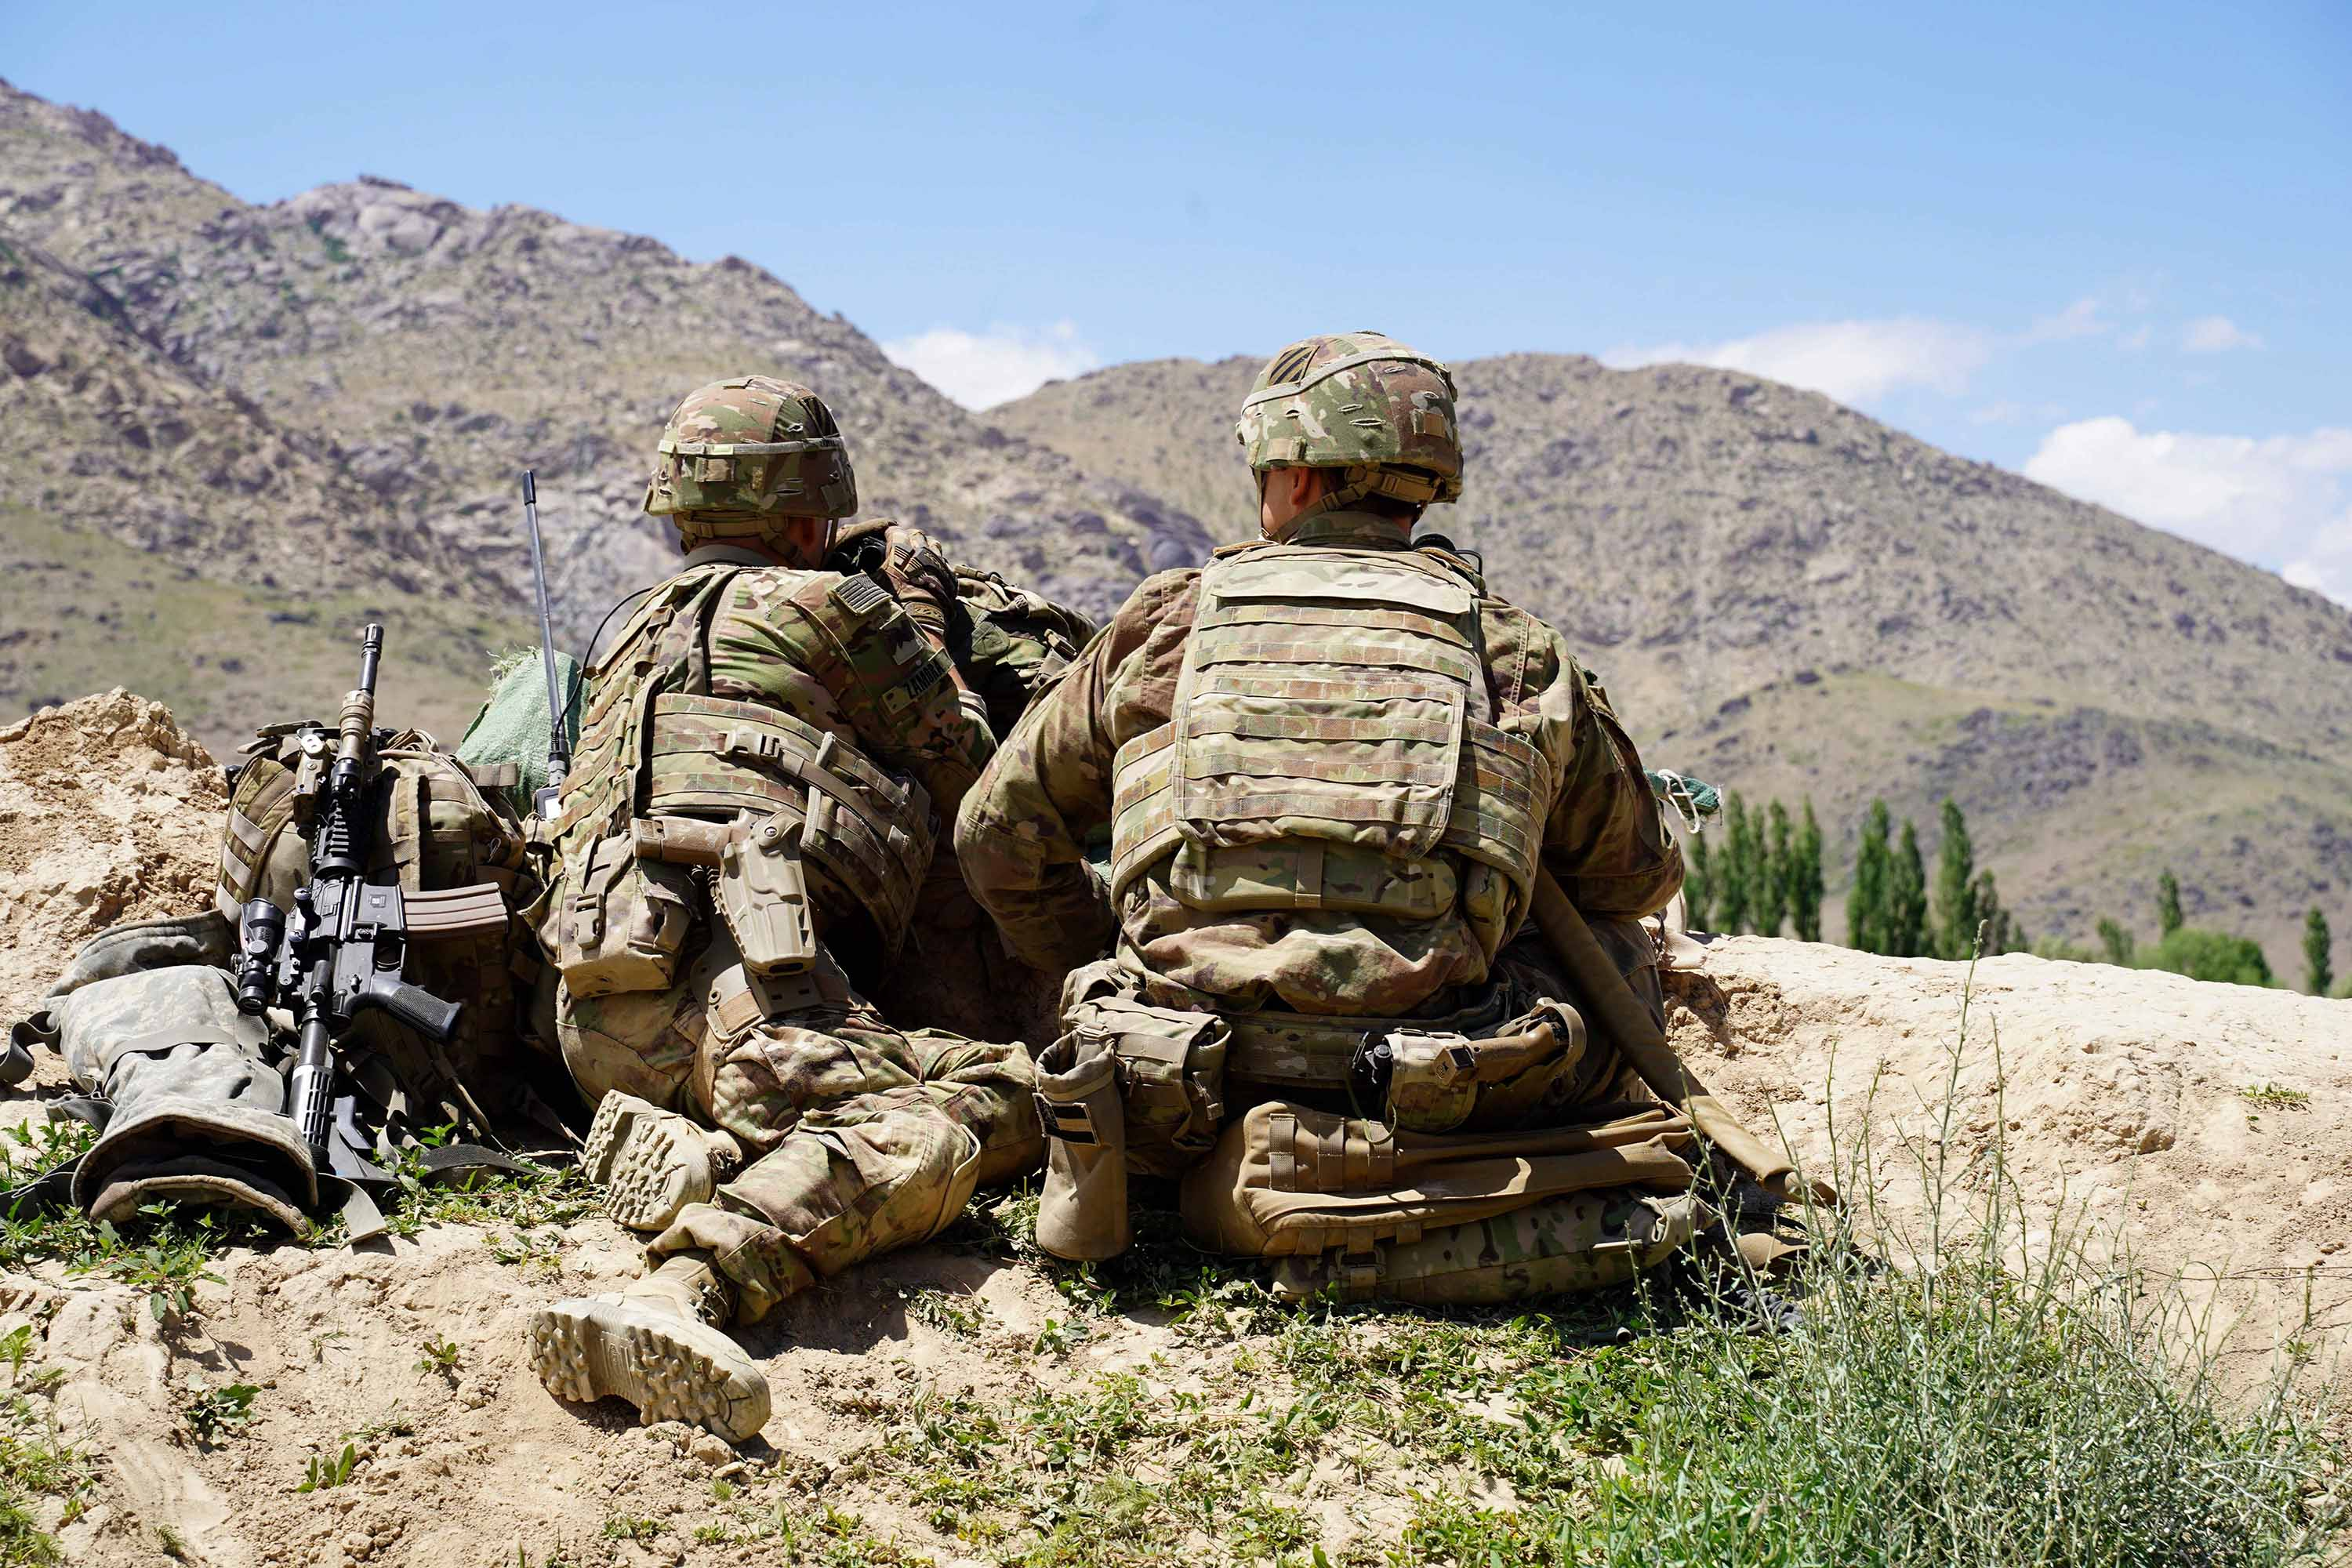 US soldiers look out over hillsides during a visit of General Scott Miller at the Afghan National Army (ANA) checkpoint in the Nerkh district of Afghanistan's Wardak province, in June 2019.